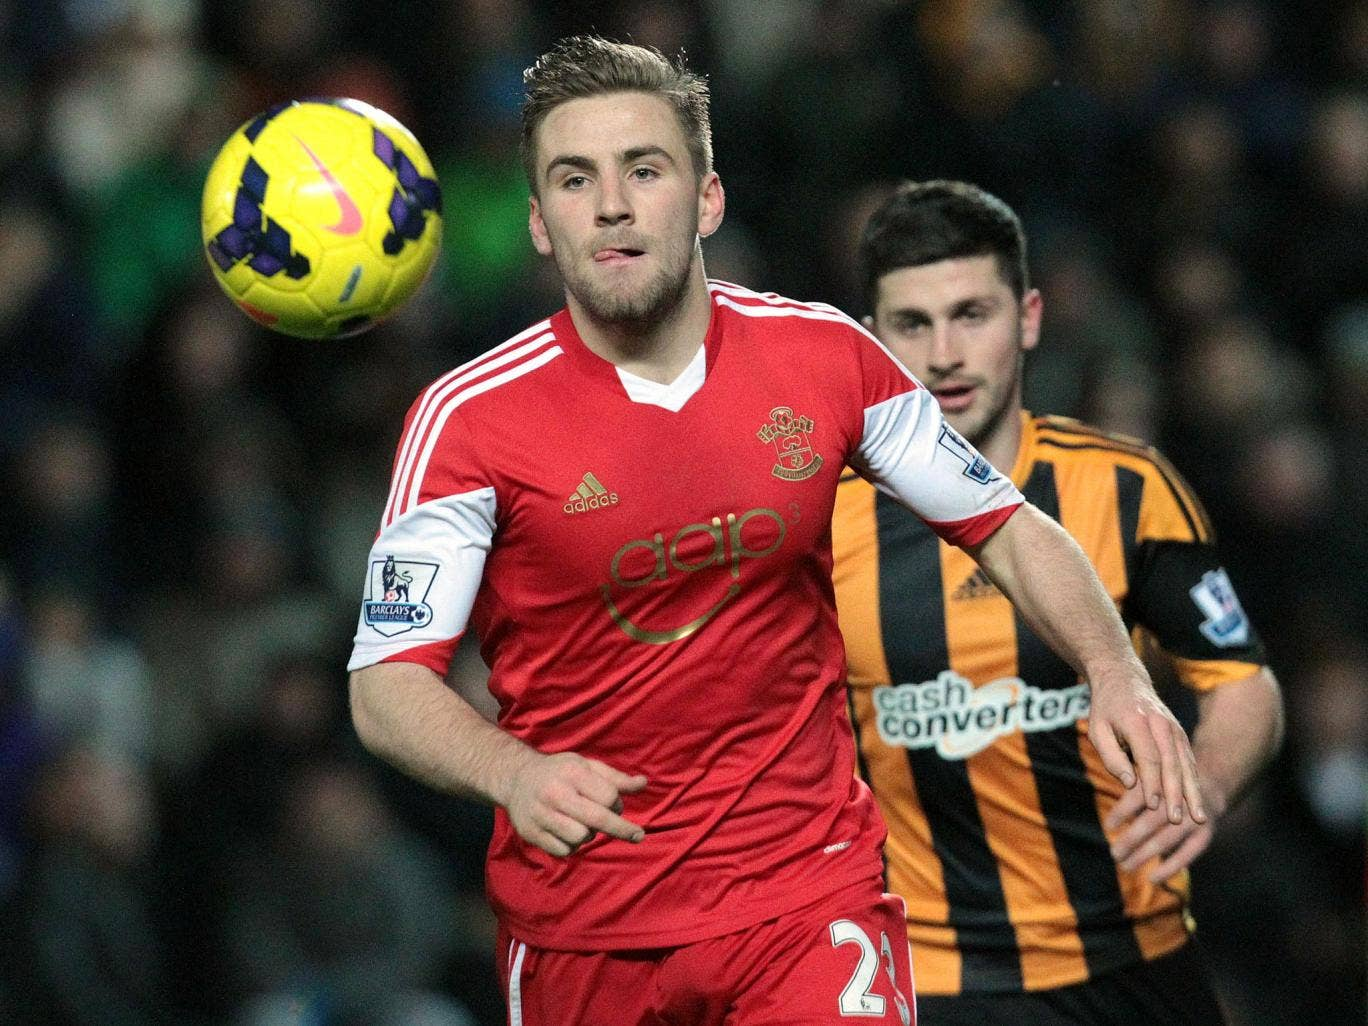 Southampton defender Luke Shaw could be given his first England cap in Wednesday's clash with Denmark